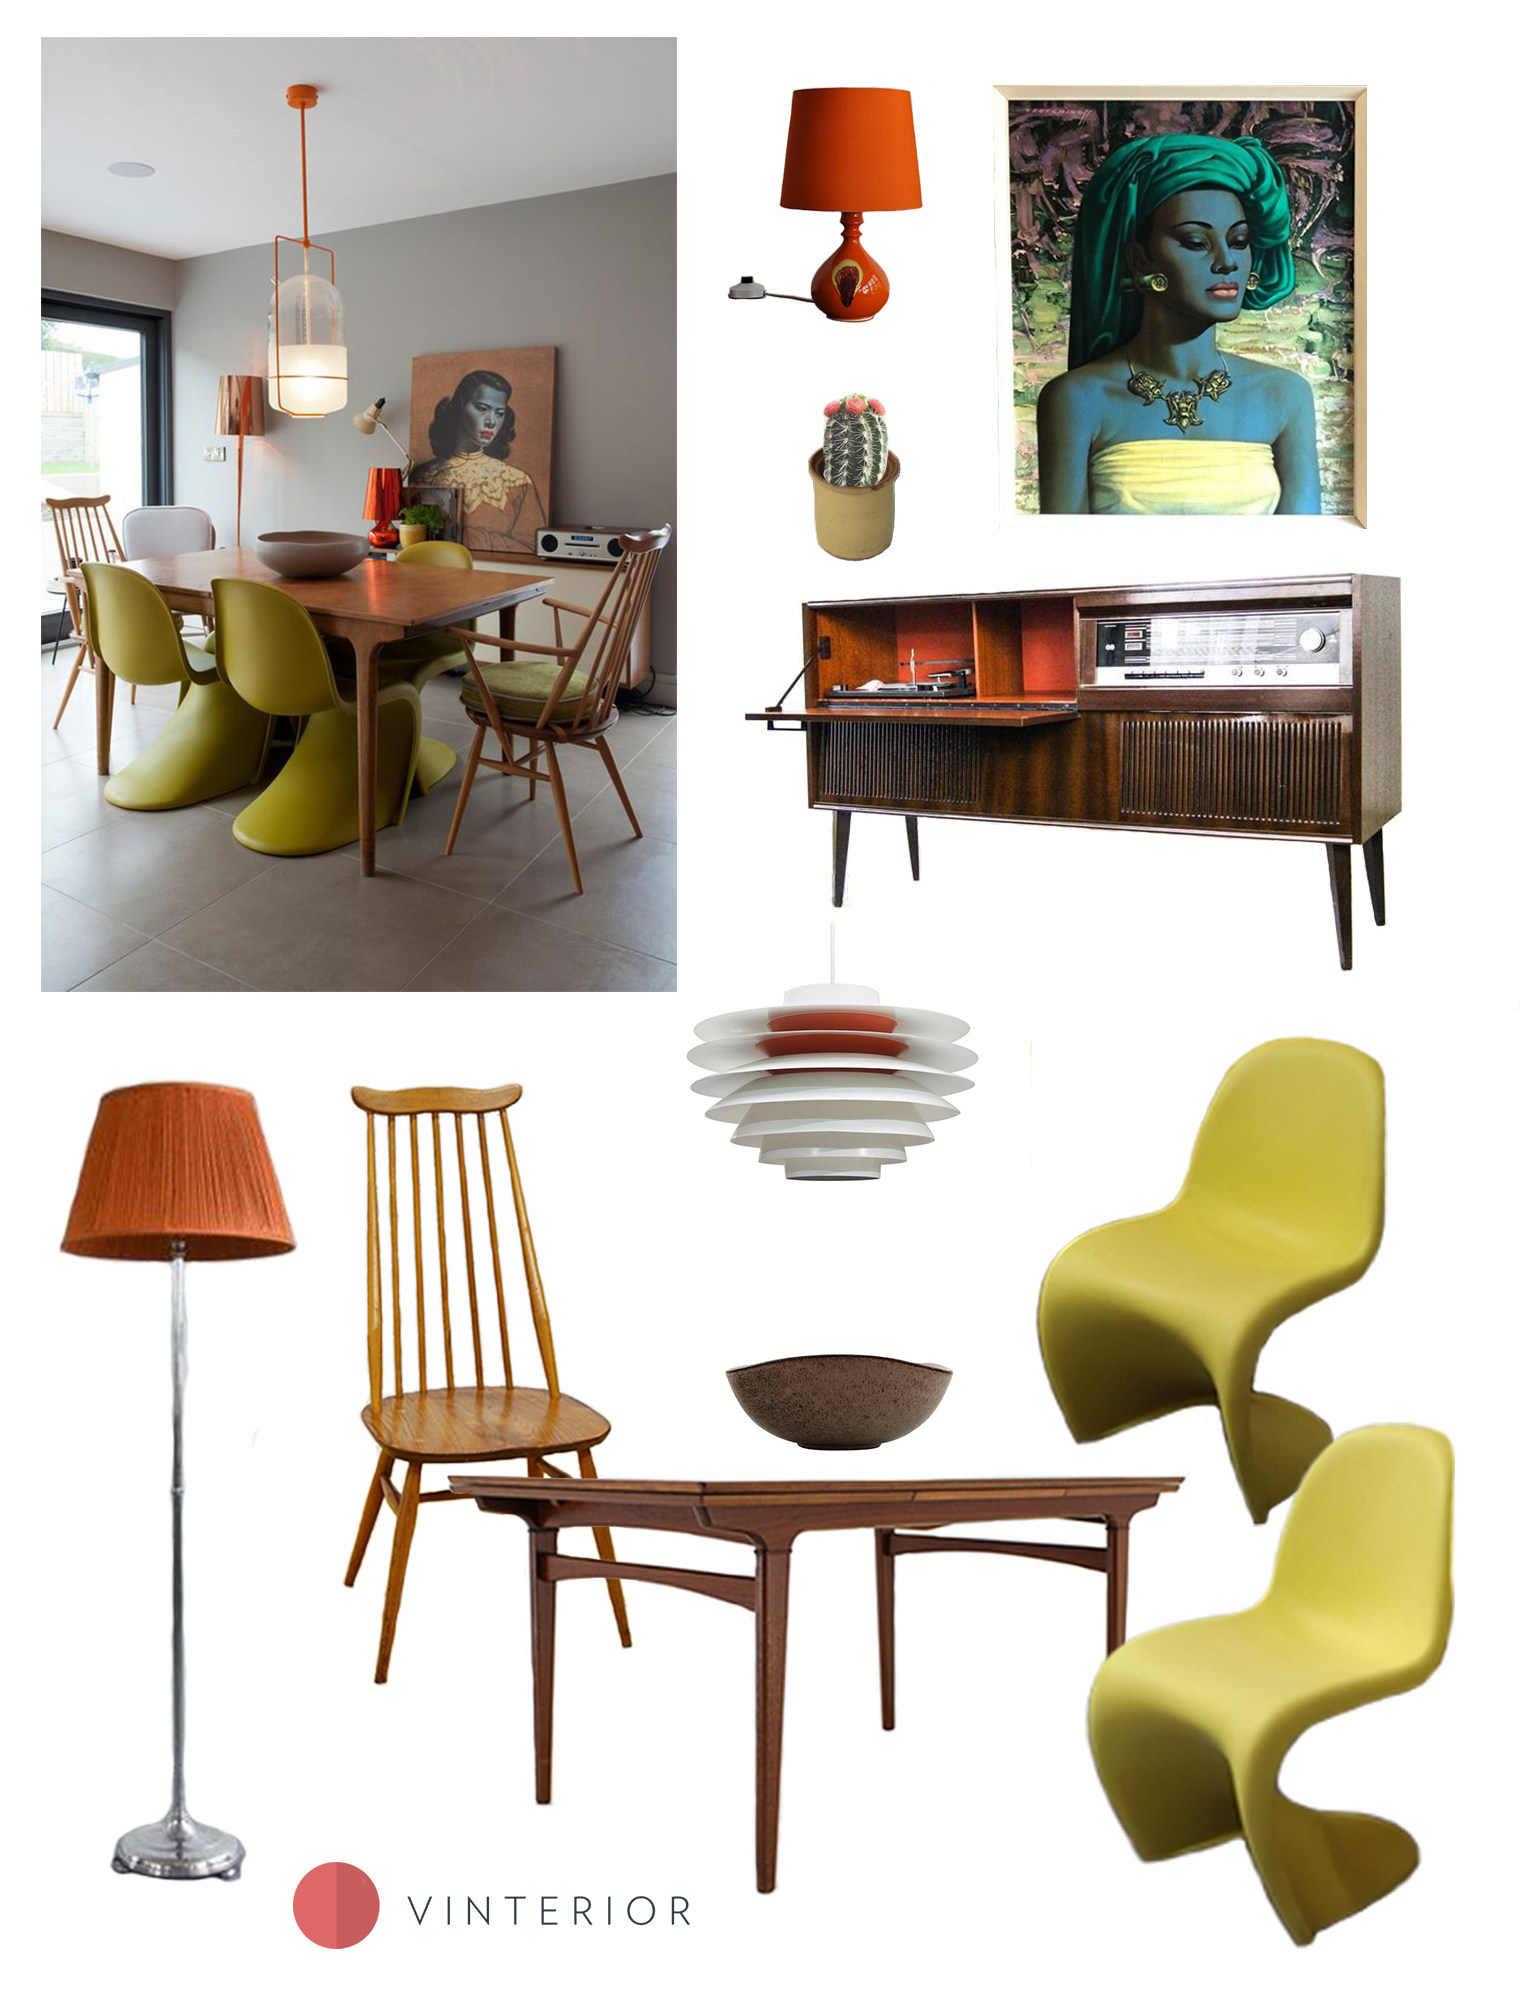 Get the Look: Mid-century Modern dining room in Orange and Green - Vinterior